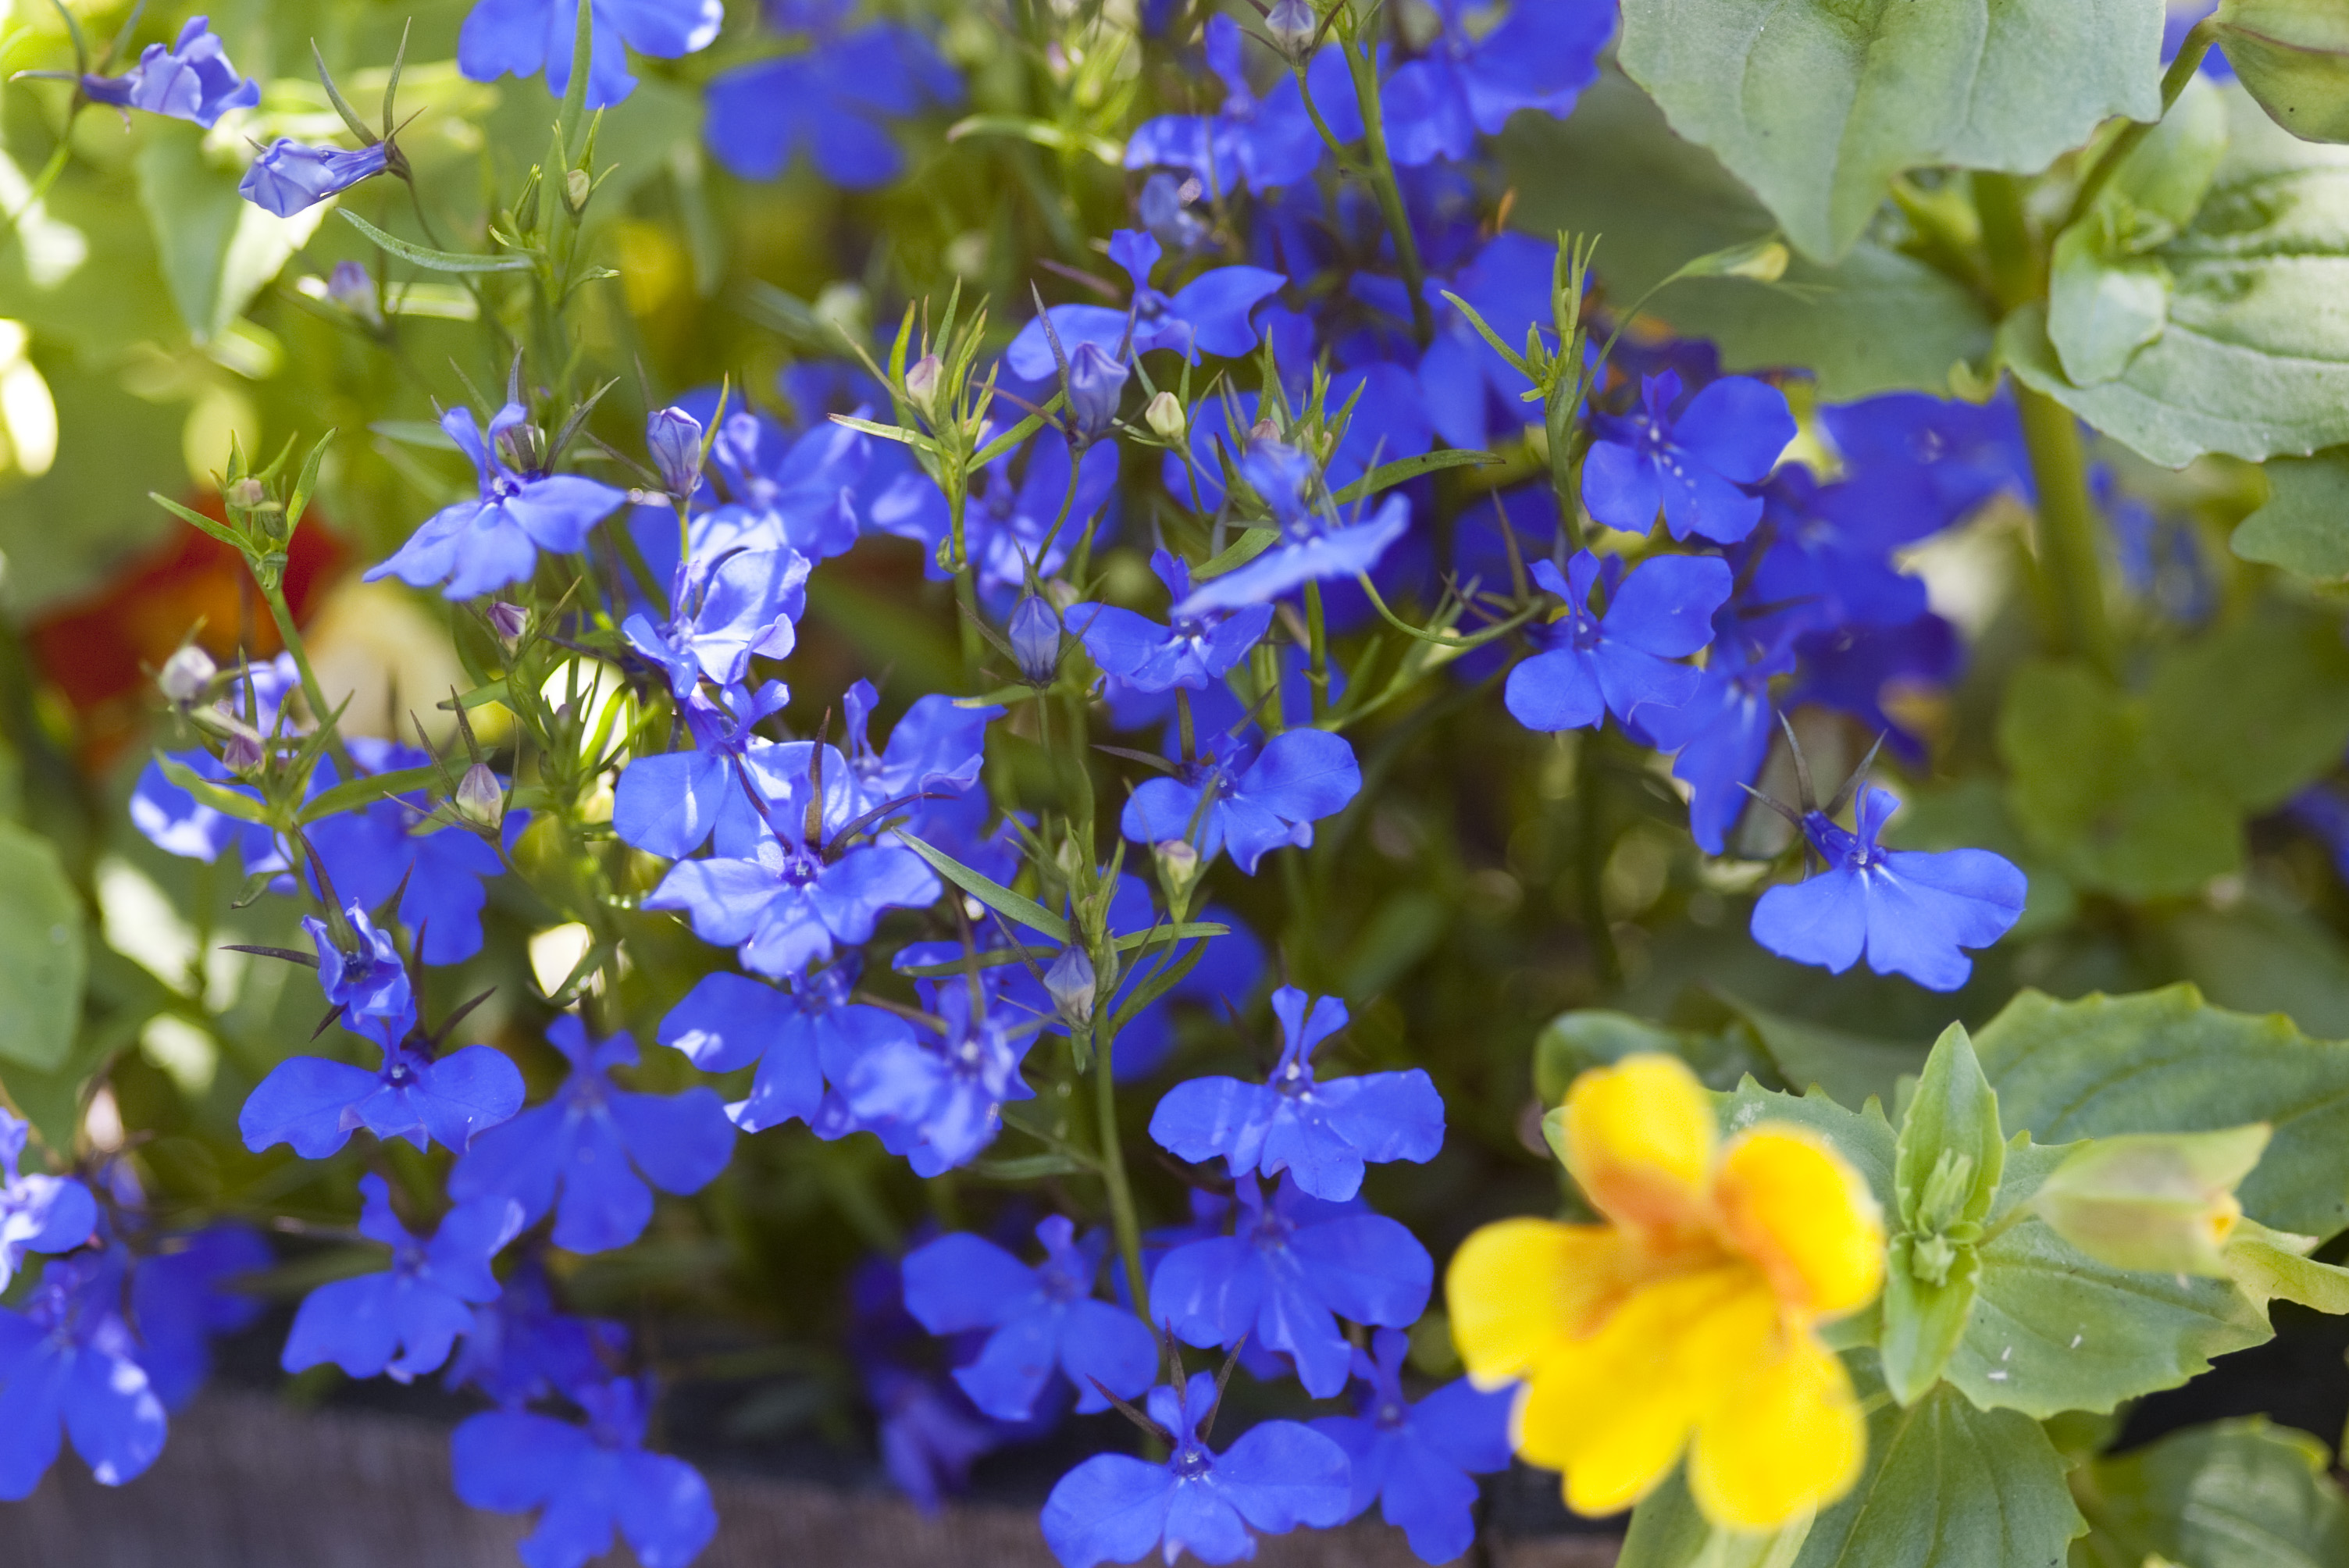 cool colourful blue flowers in a cottage garden flower bed with flowers in a garden